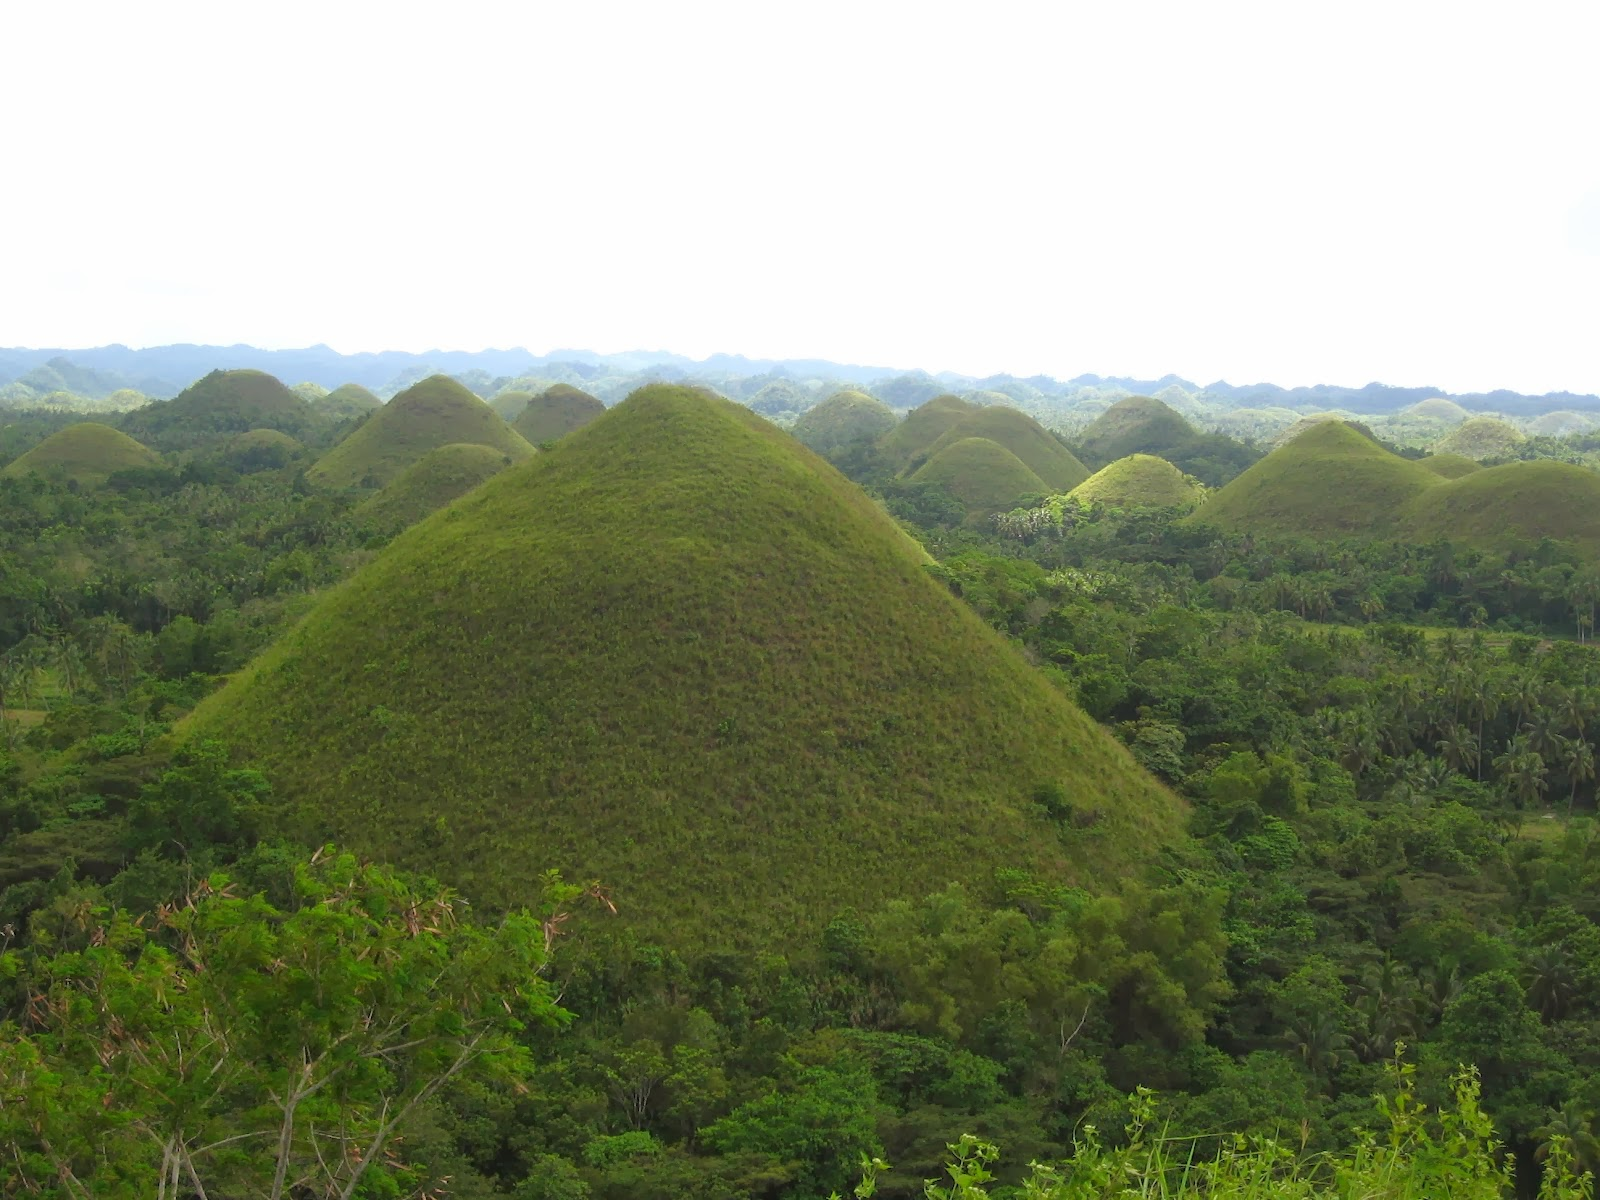 chocolate hills Msd phone card holder, sleeve/wallet for iphone samsung android and all smartphones with removable microfiber screen cleaner silicone card caddy(4 pack) chocolate hills bohol island philippines image.